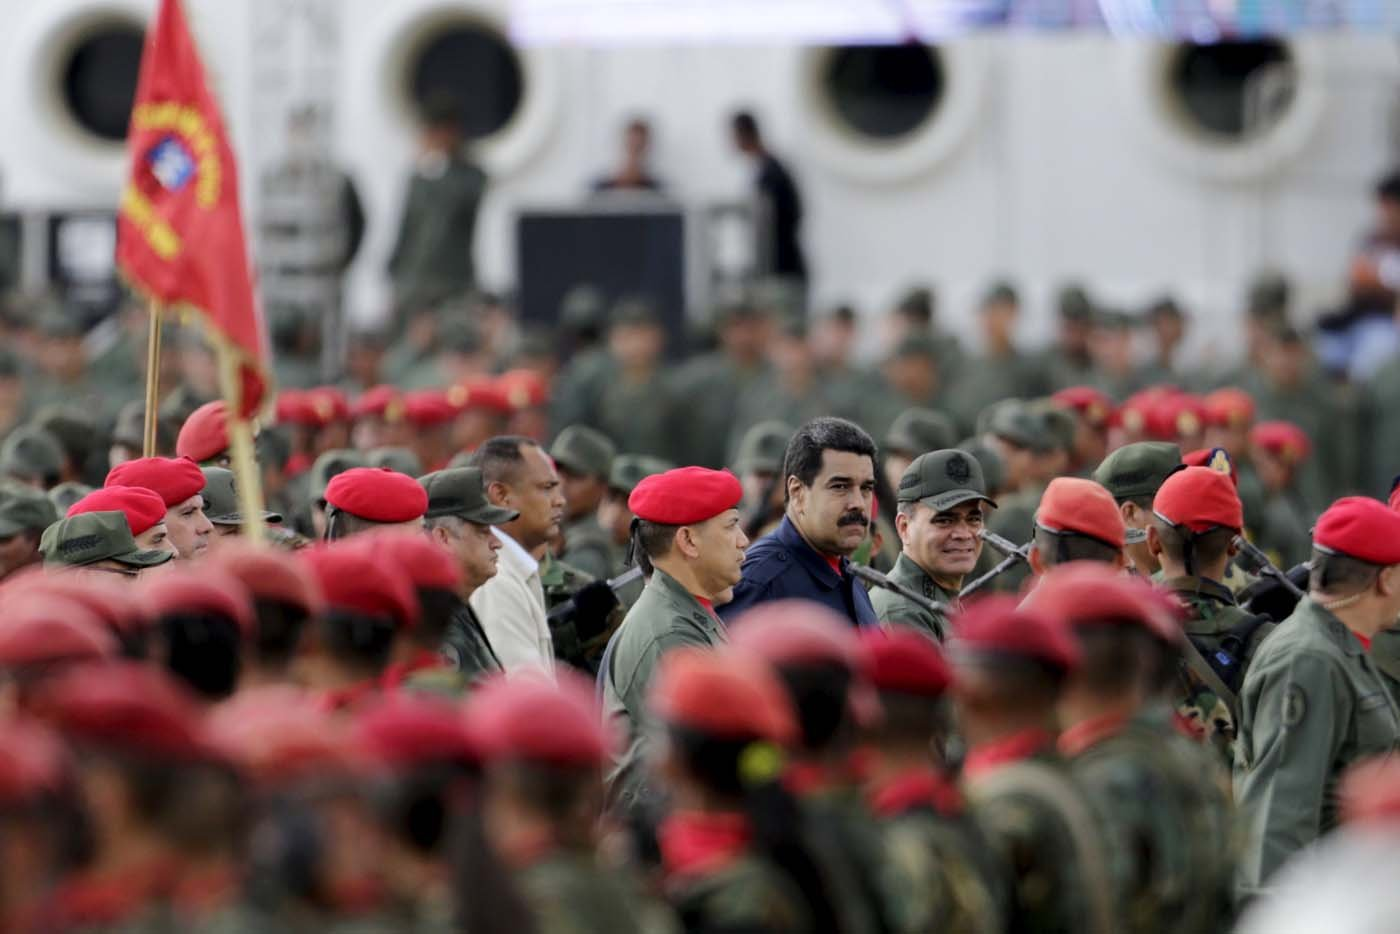 Venezuela's President Nicolas Maduro (C) attends a military parade in Caracas, December 12, 2015. REUTERS/Marco Bello    FOR EDITORIAL USE ONLY. NO RESALES. NO ARCHIVE.